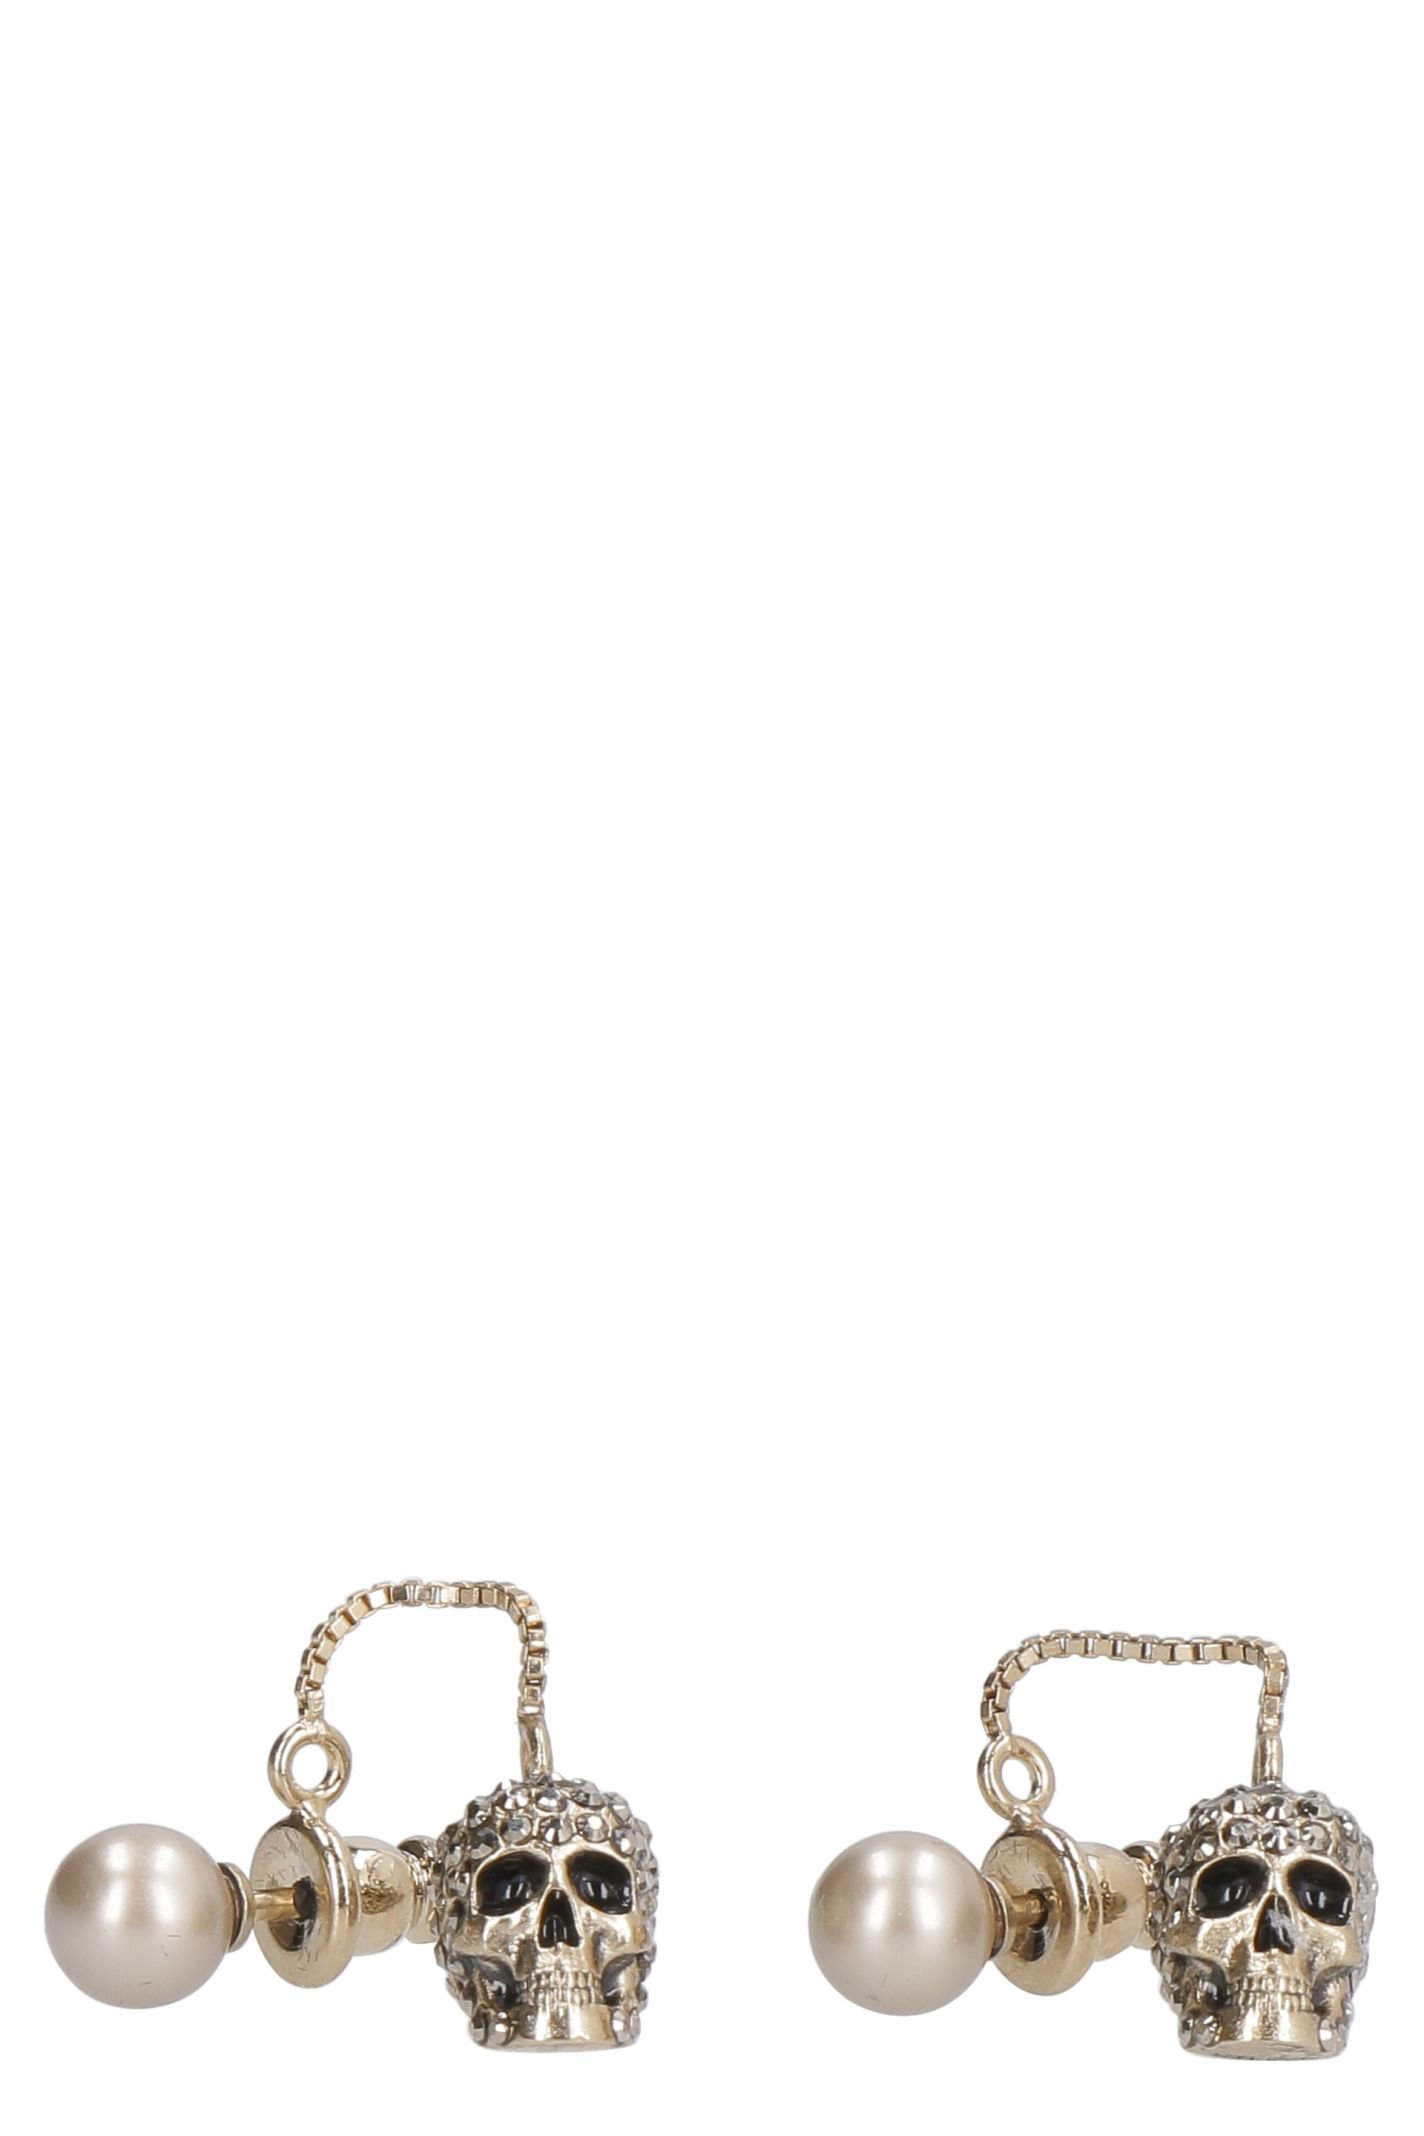 Alexander McQueen Earrings With Pearl And Skull